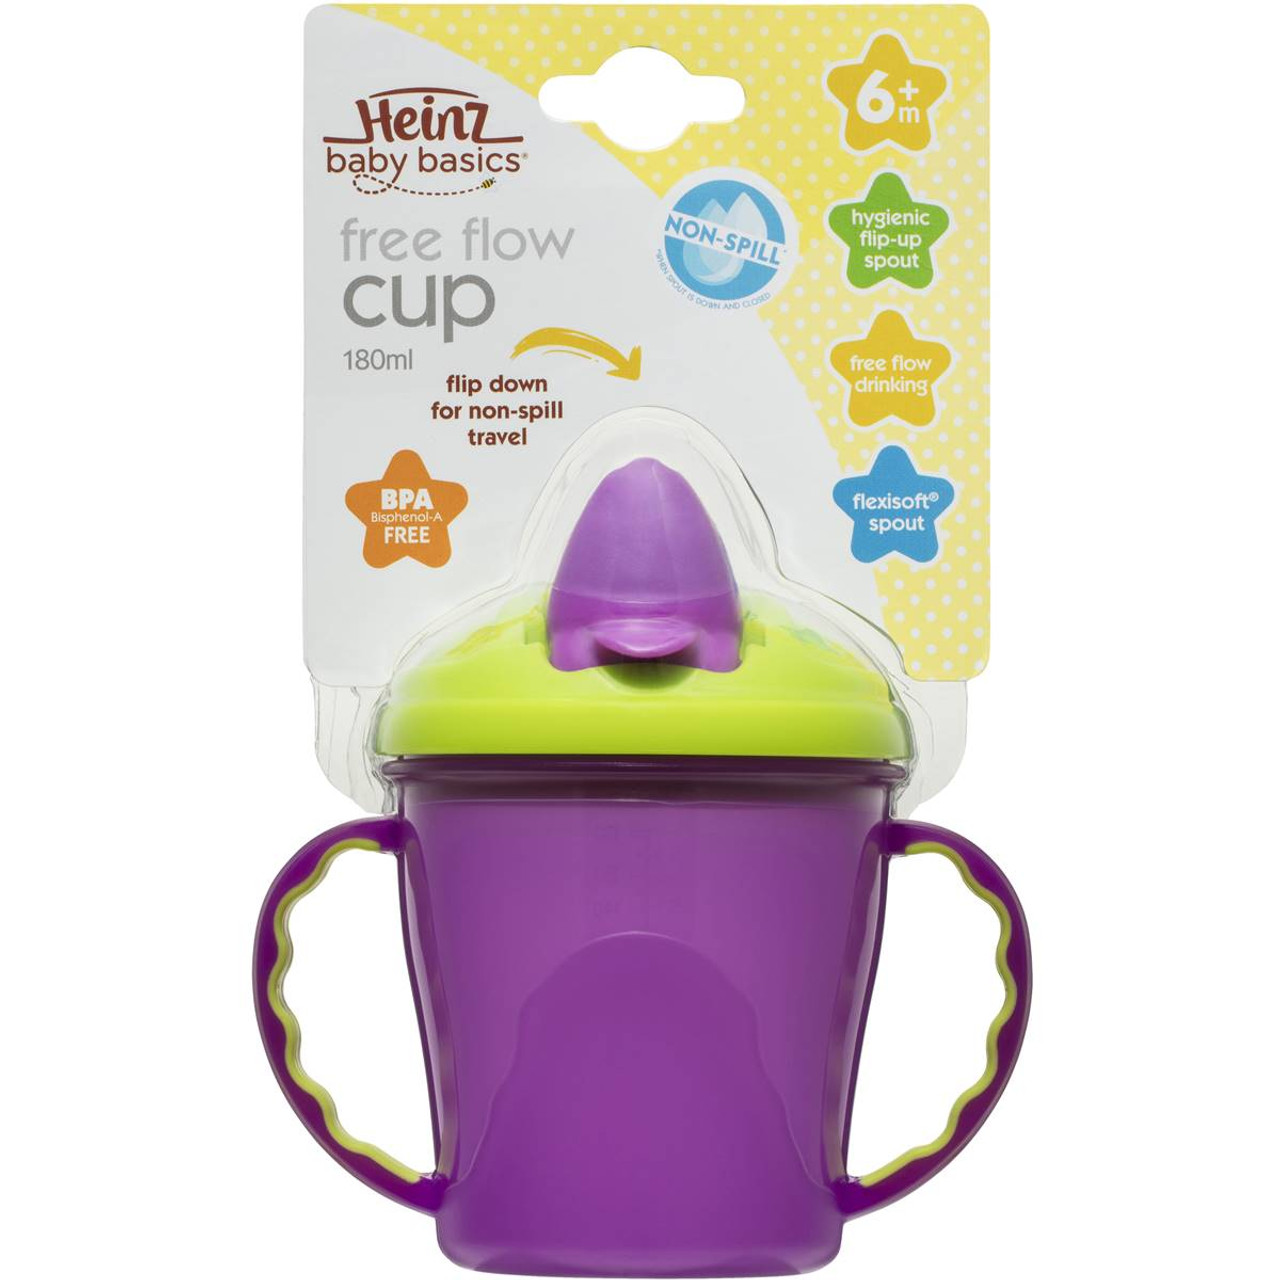 Heinz Baby Basics Trainer Cup with Handles at Baby Barn Discounts Heinz Baby Basics Trainer Cup with Handles is non-spill with hygienic spout cover.